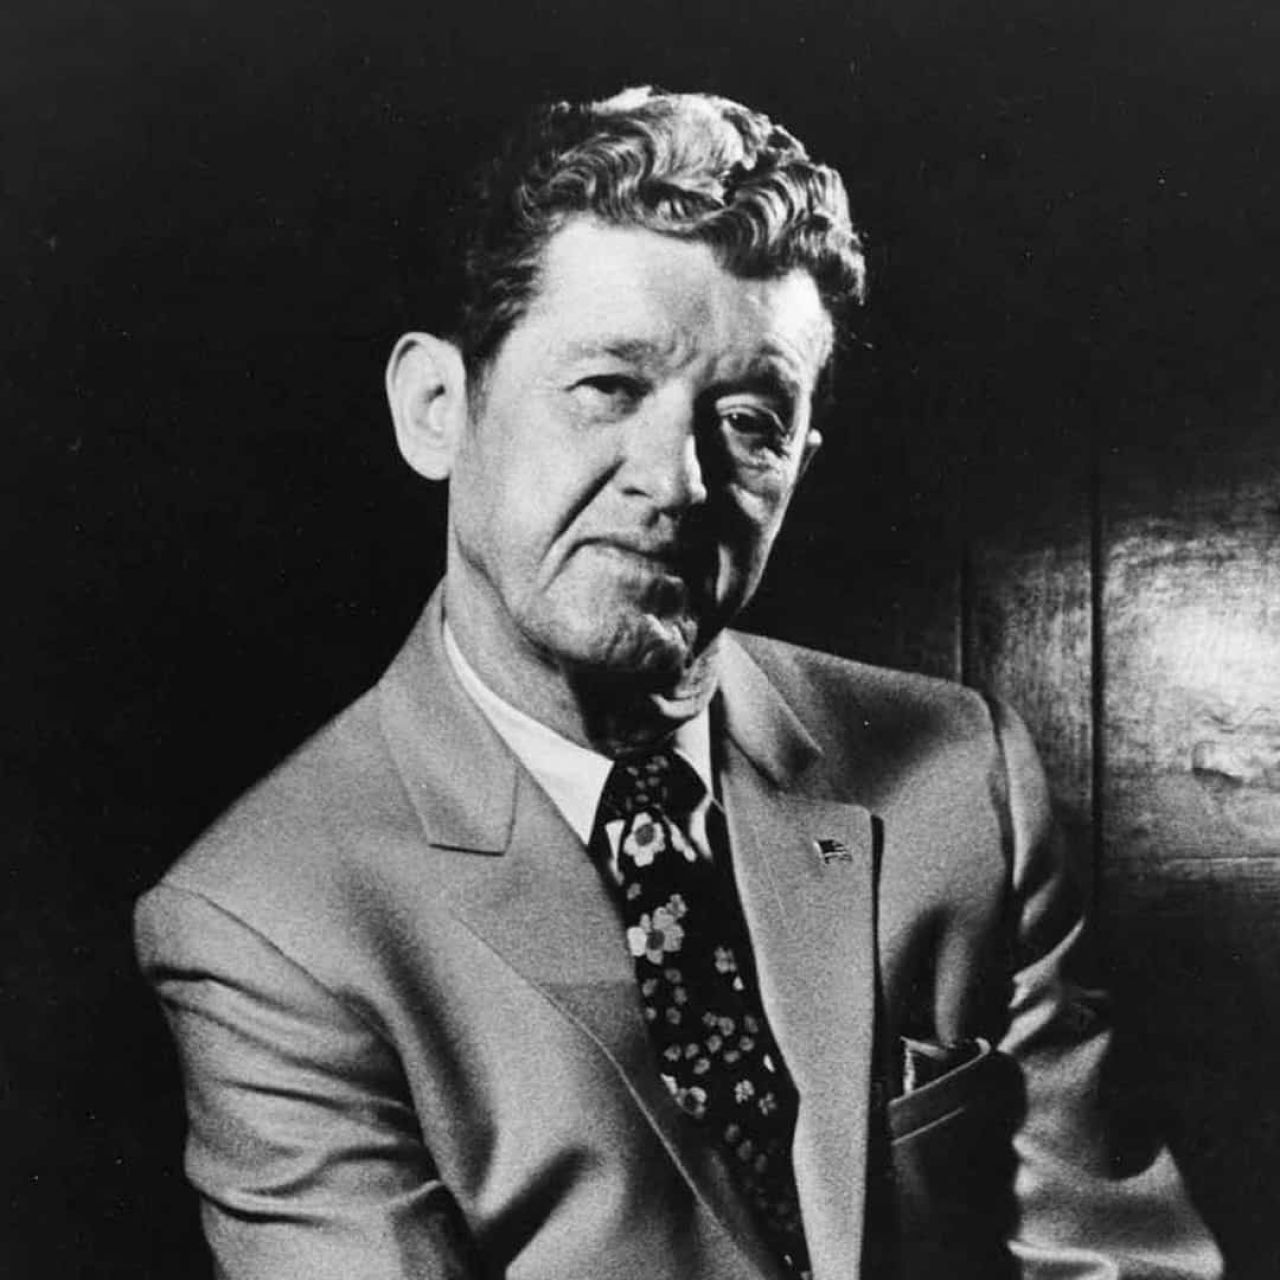 Roy Acuff Country Music Hall of Fame